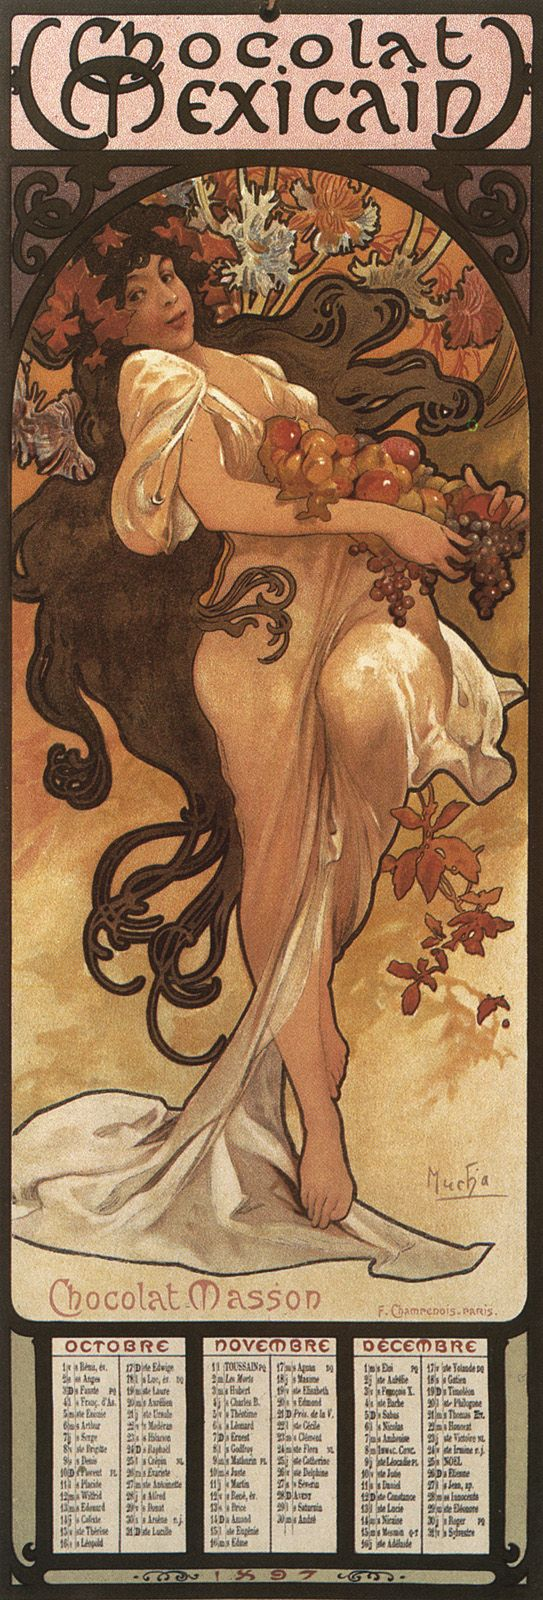 1896 'Chocolat Masson' calendar October - December © Alphonse Mucha Estate-Artists Rights Society (ARS), New York-ADAGP, Paris